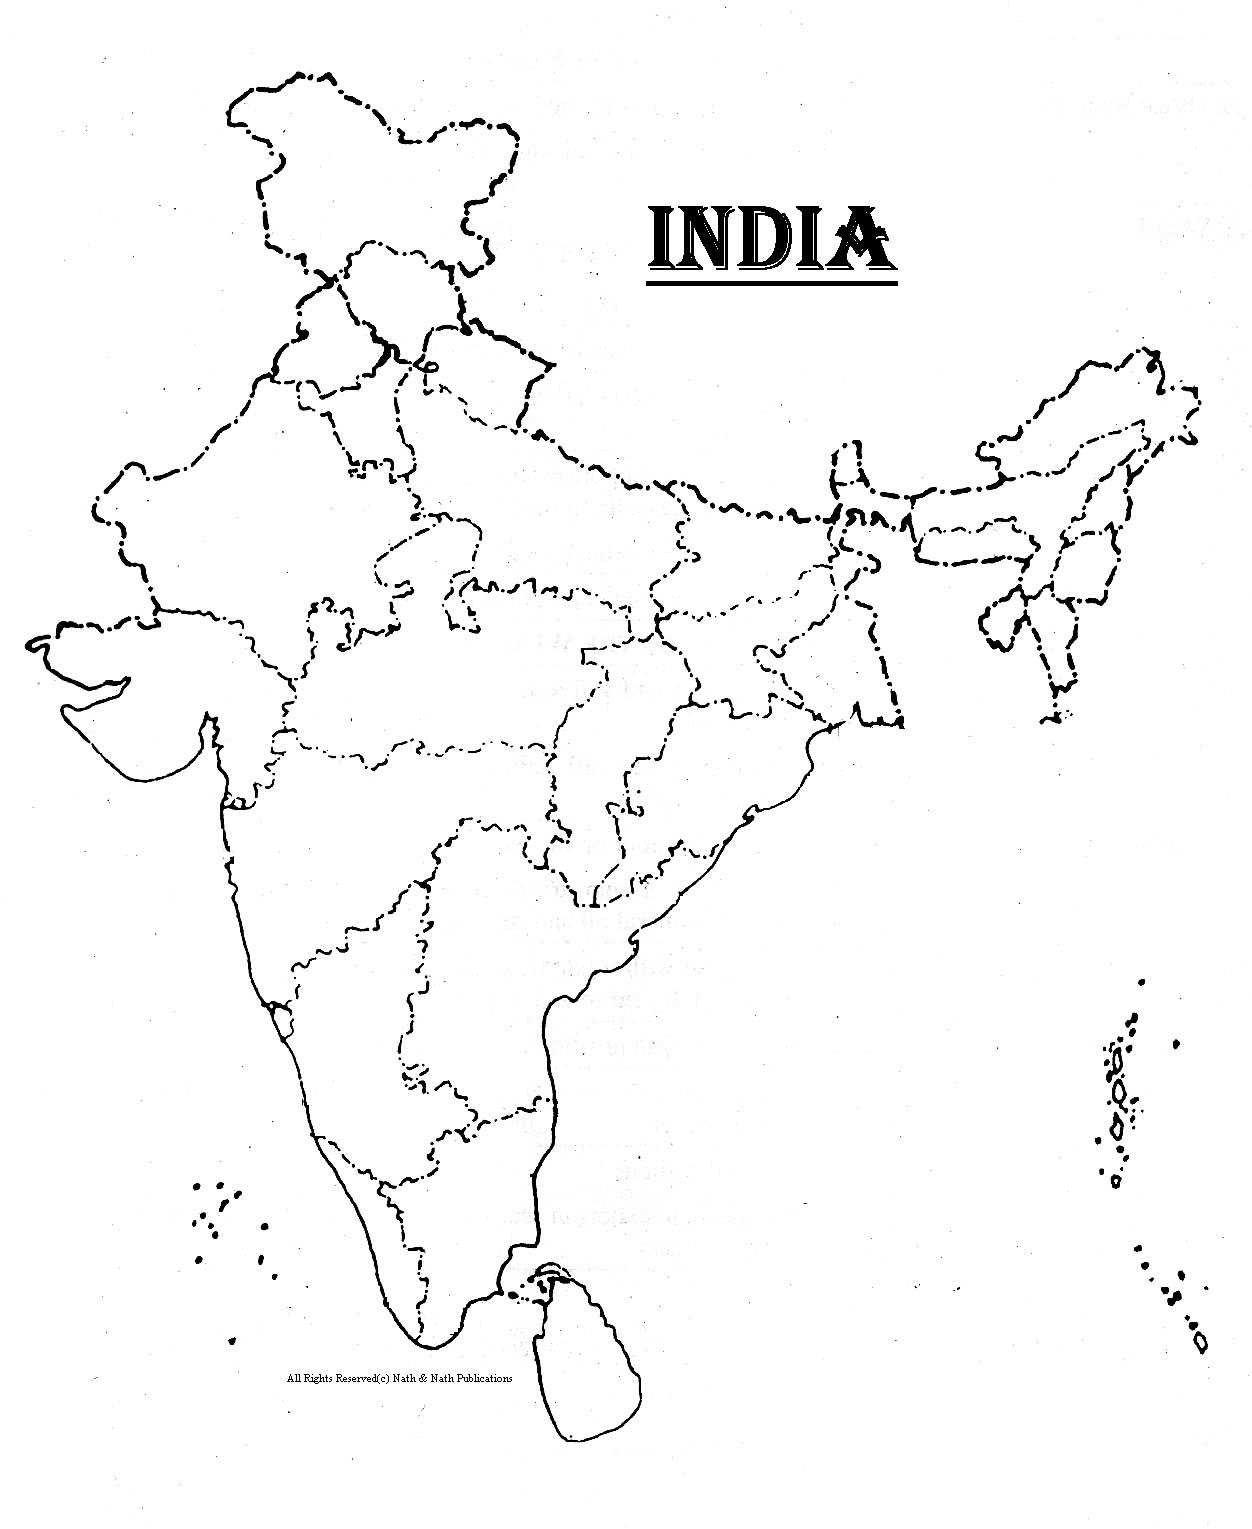 Blank Political Map Of India Without States And Cities Names likewise Dialog Box 104 Models   1467 likewise Velociraptorfreecounter neocities moreover Classic 30th Birthday Milestone Invitations P 607 57 30 as well Coeur. on free blank quotes